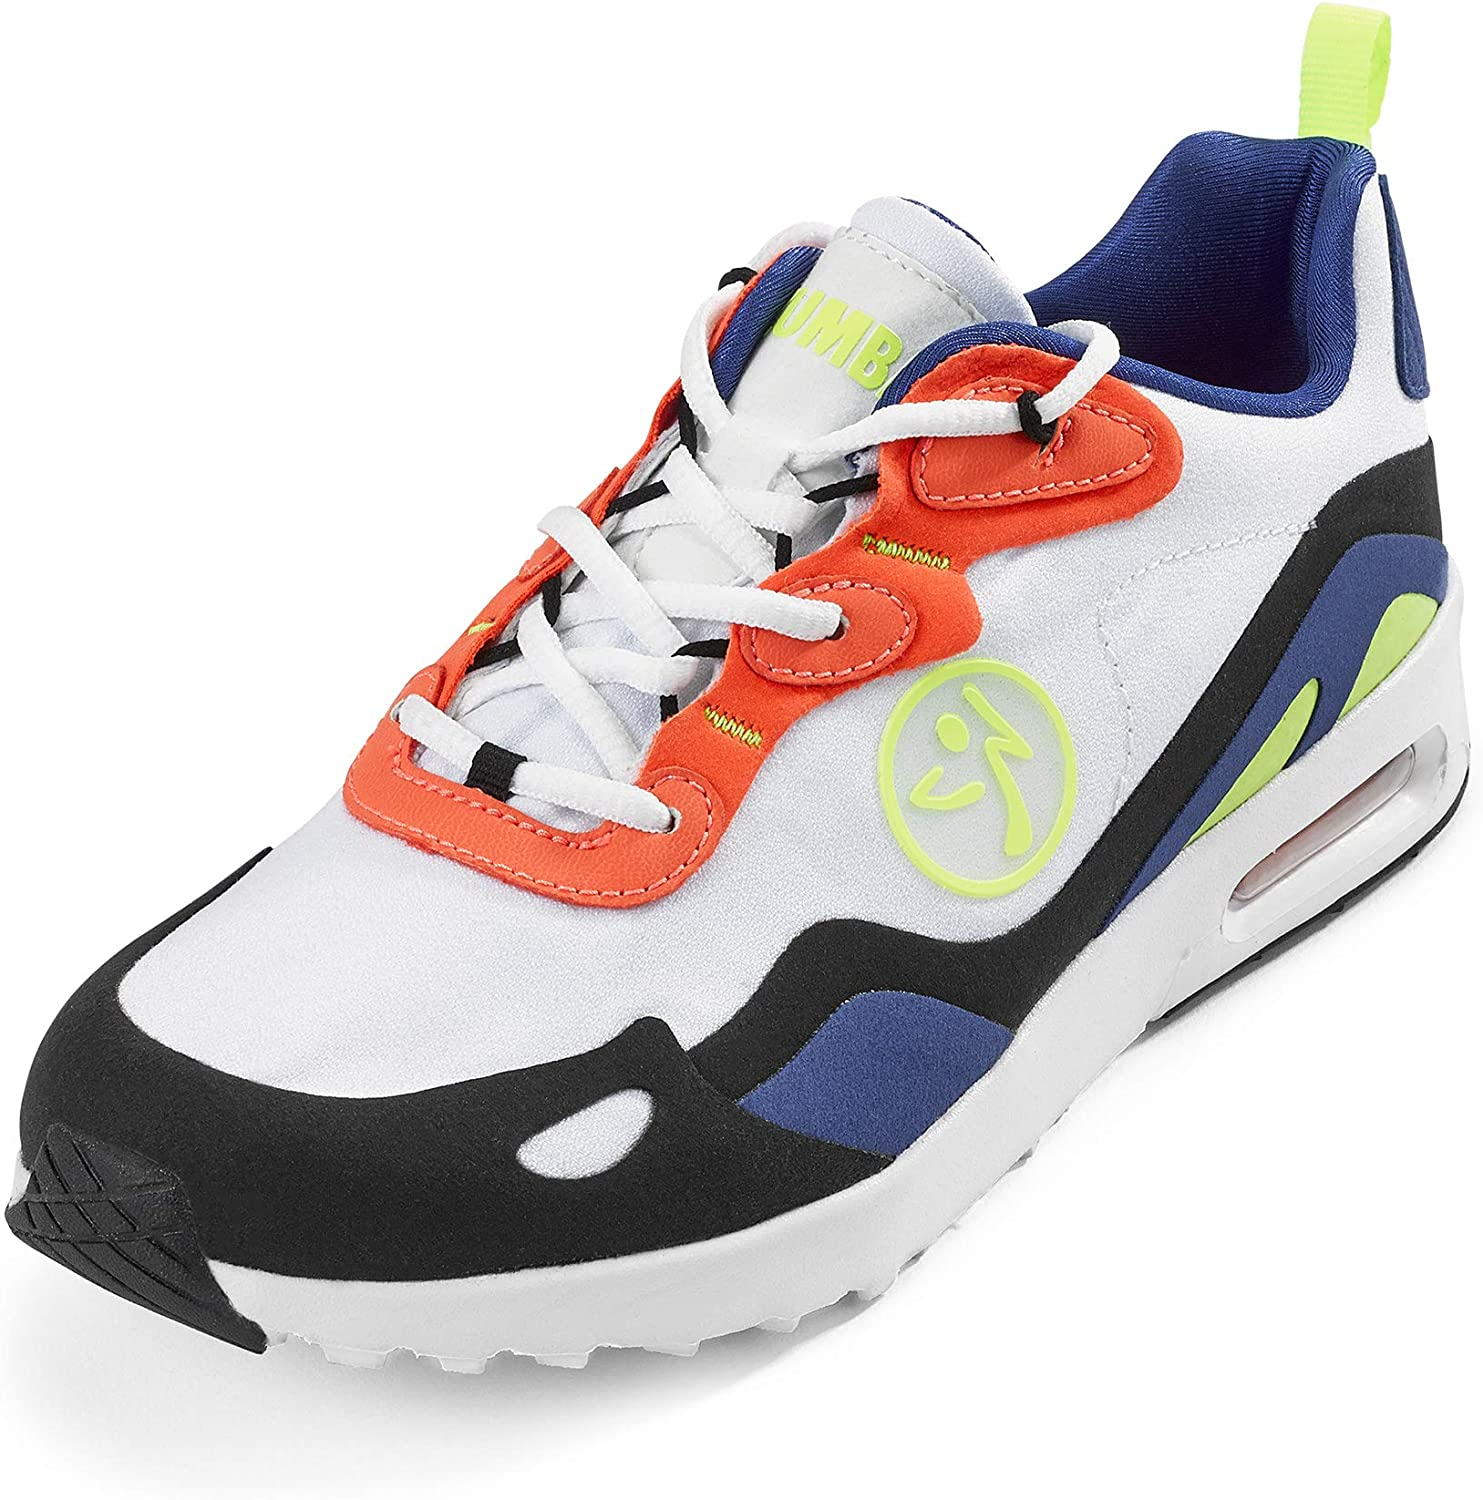 Zumba Air Classic Comfy Gym Shoes Athletic Dance Fitness Workout Shoes for Women